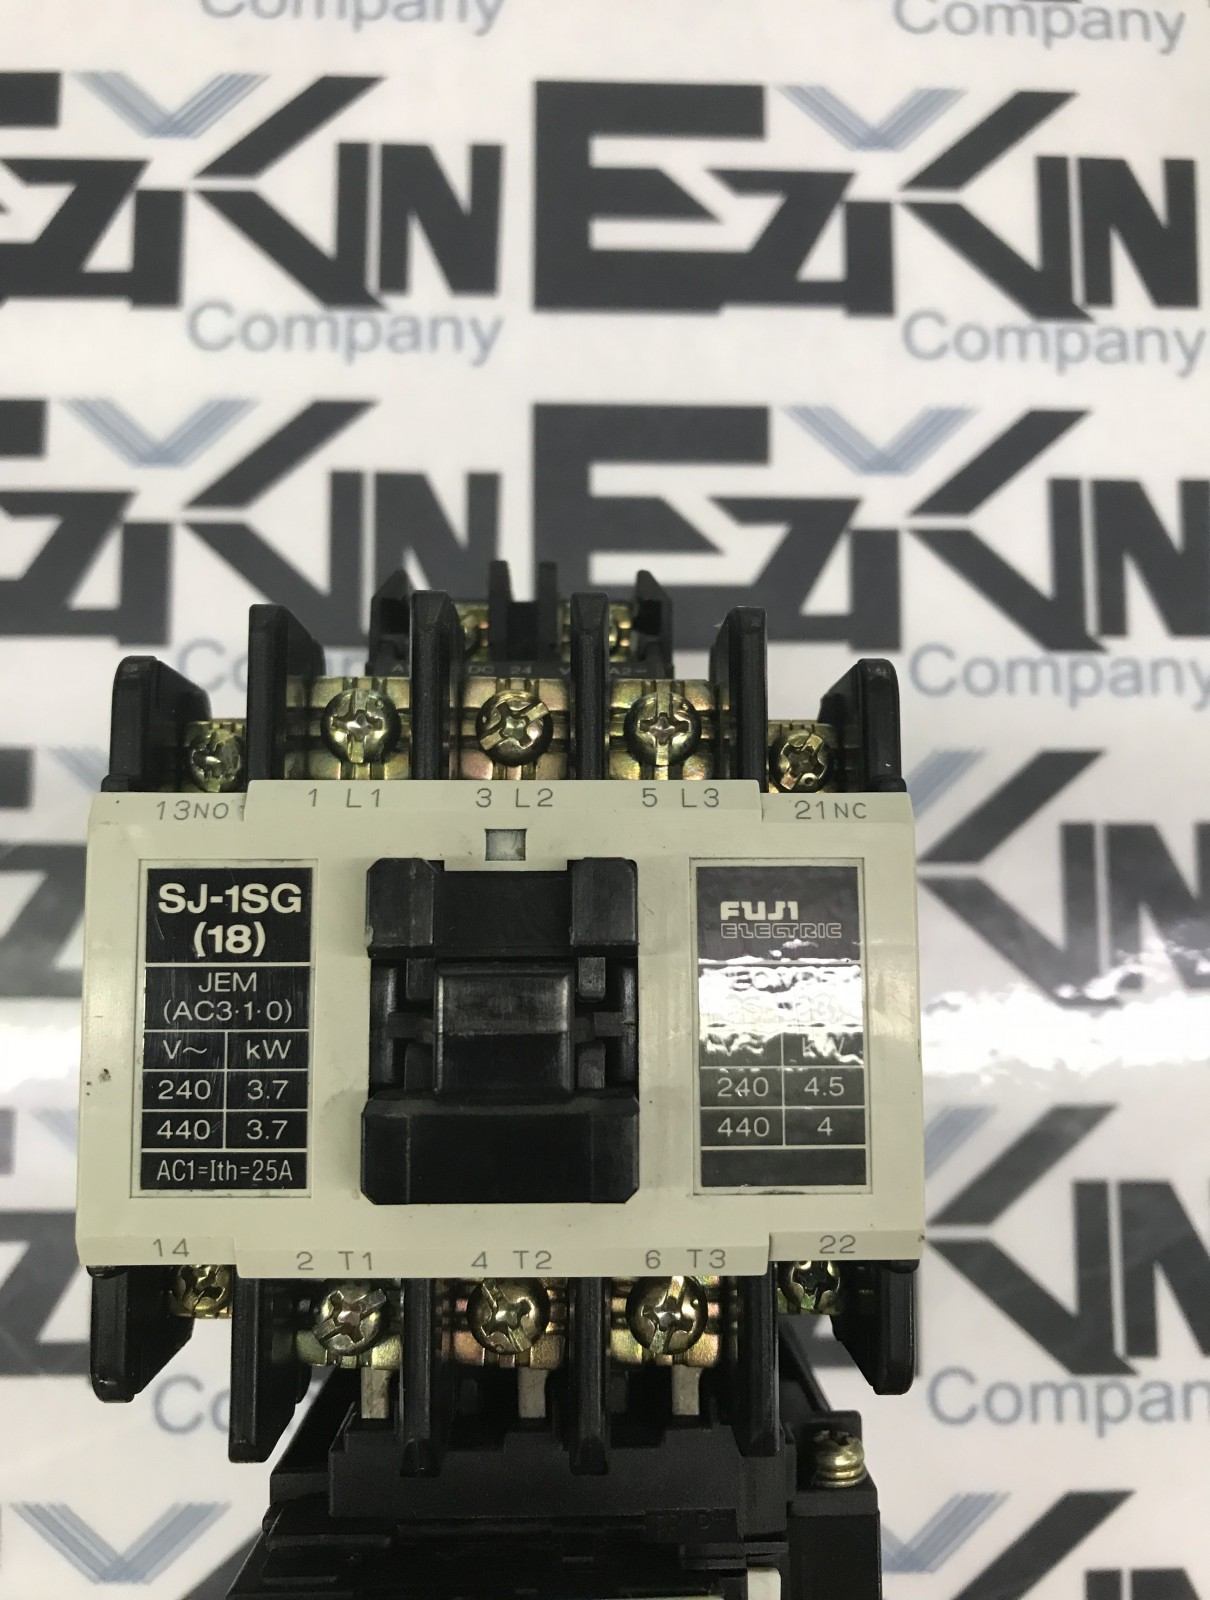 FUJI SJ-1SG (18) CONTACTOR WITH TR-5-1N/3 RELAY USED